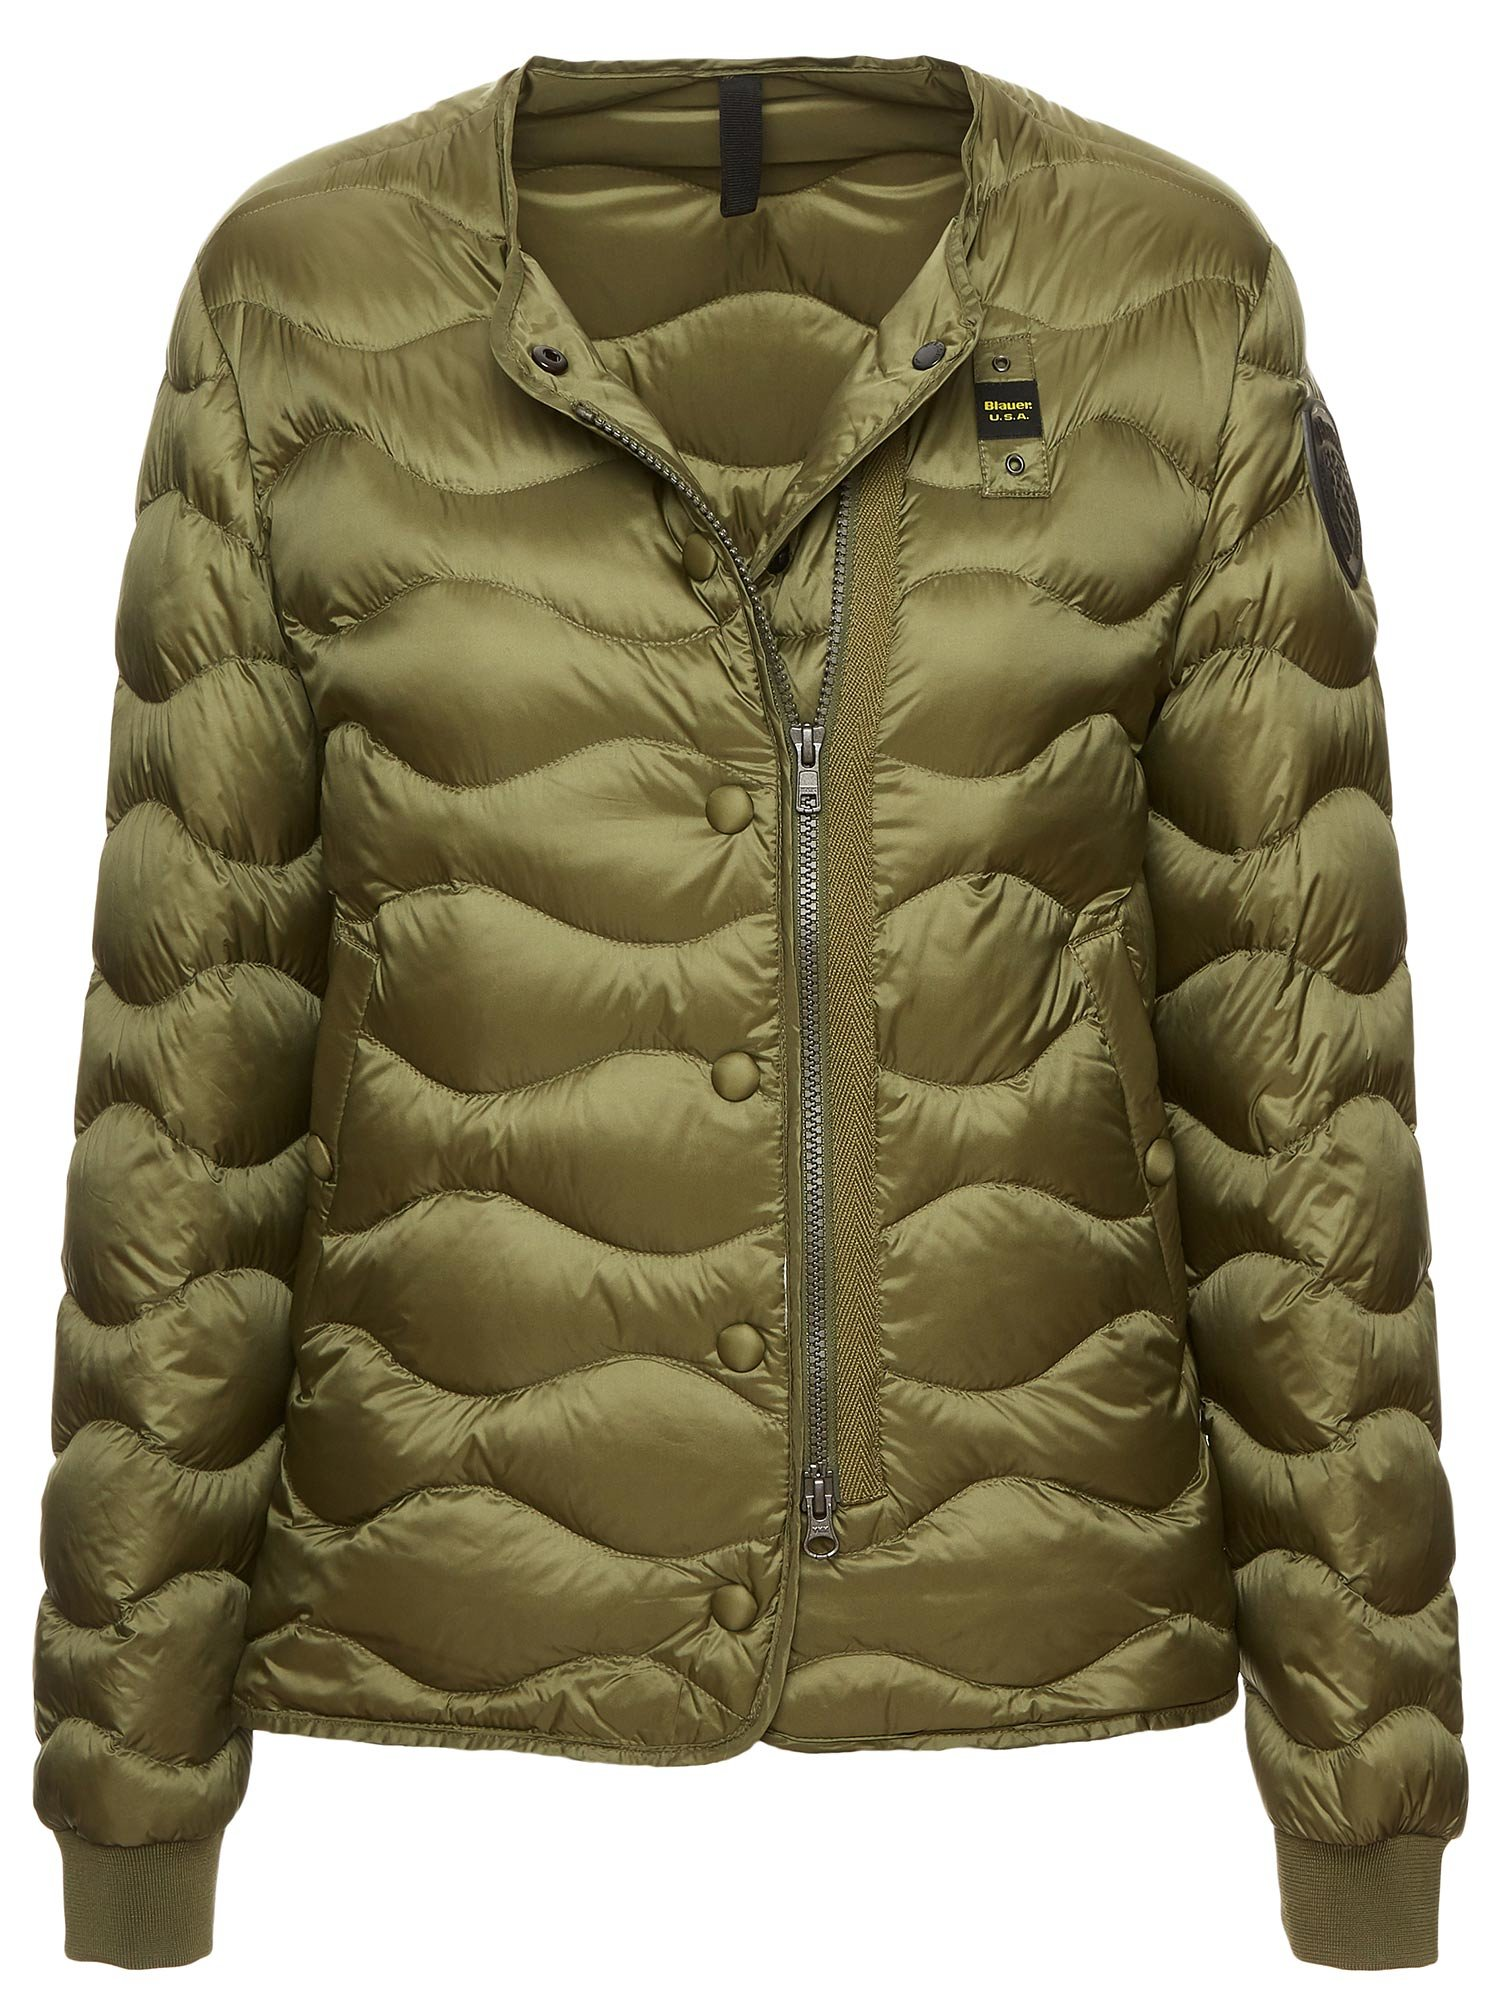 Blauer - VIOLET SHORT LIGHTWEIGHT DOWN JACKET - Alpine Green - Blauer